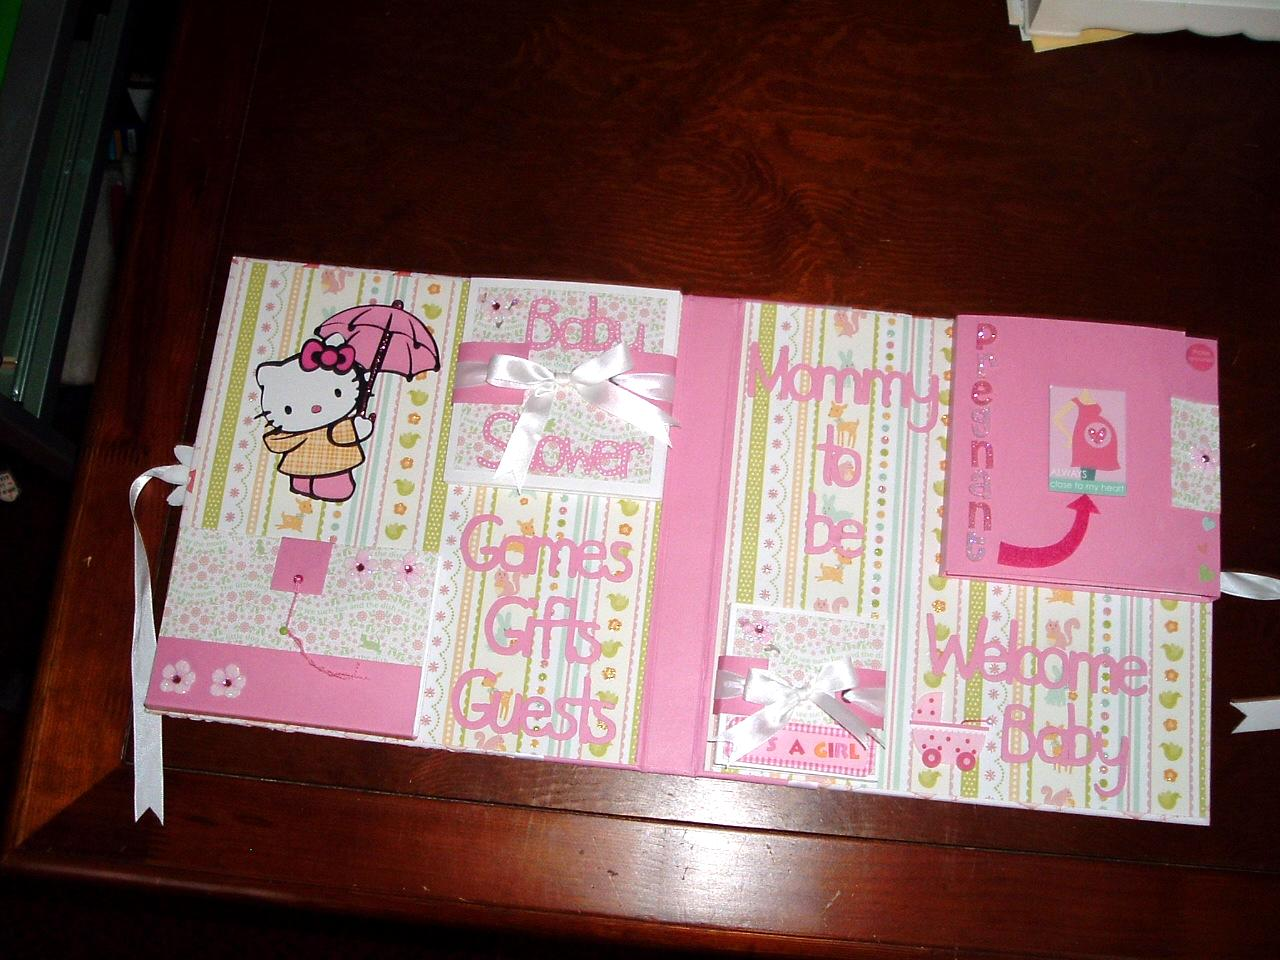 Pats scraps designs a baby shower book notice the hello kitty in the left top corner she is out in the rain i used the hello kitty greeting cricut cartridge to cut her out m4hsunfo